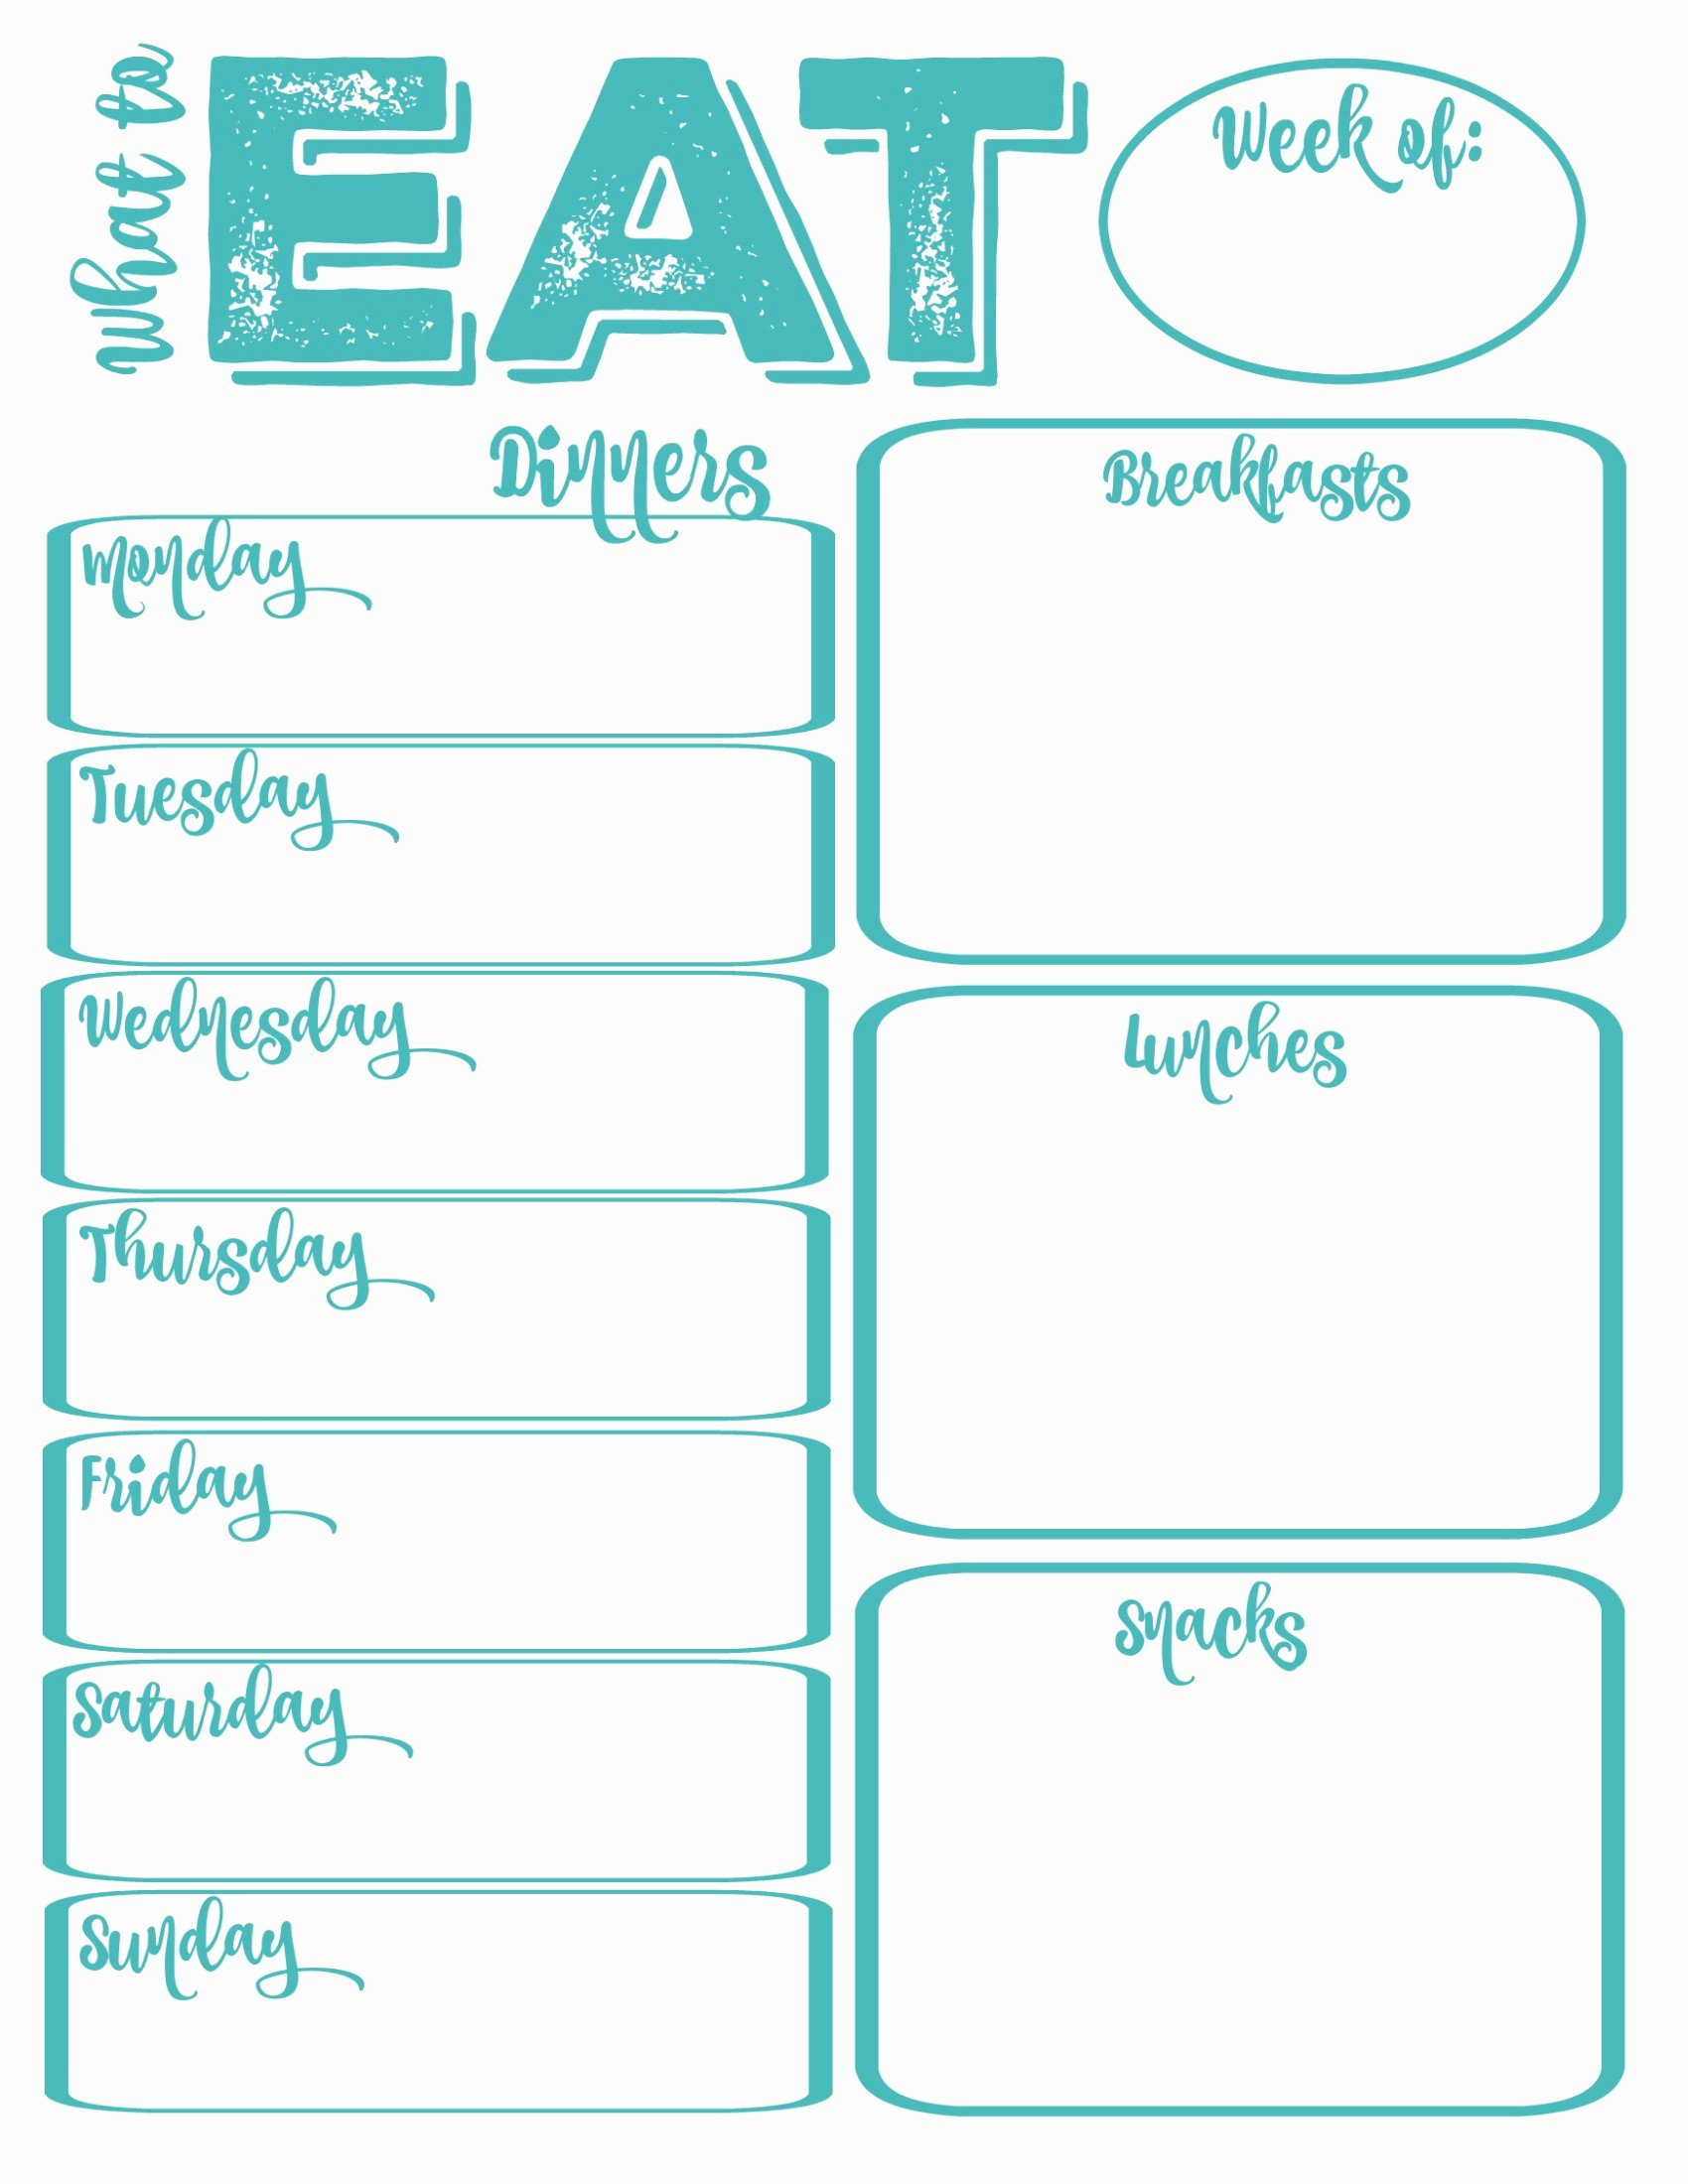 Weekly Meal Planning Template Free Awesome Pantry Makeover Free Printable Weekly Meal Planner and